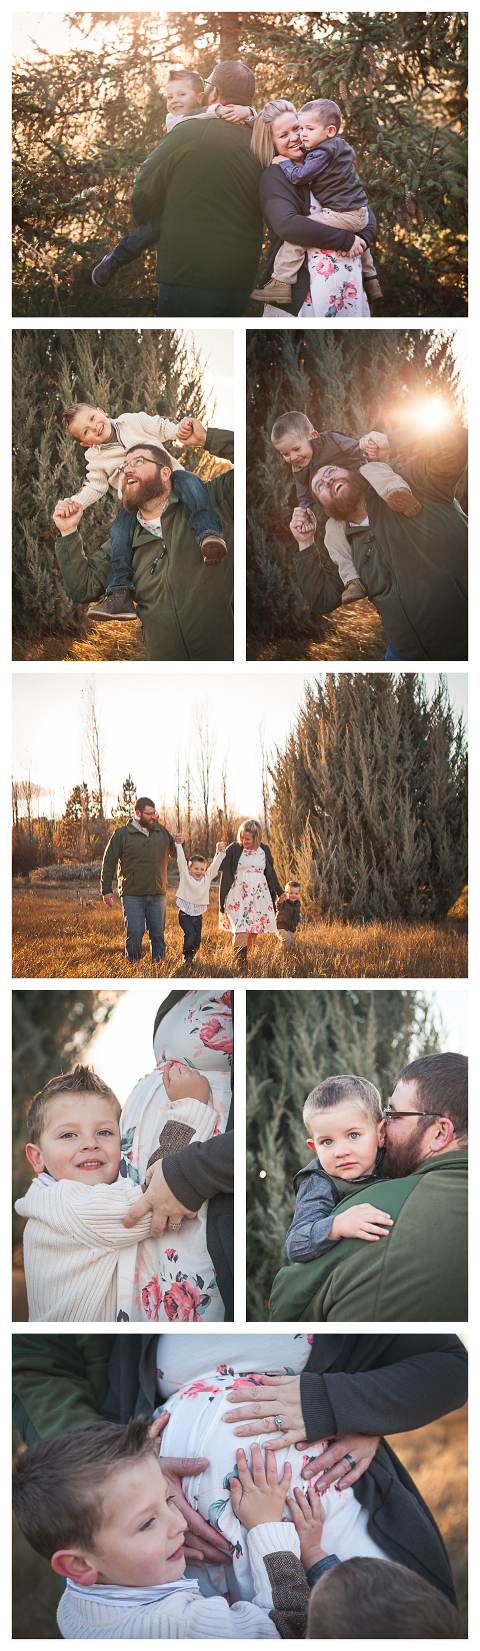 Baby Abby lifestyle newborn photography by Hailey Haberman in Ellensburg WA